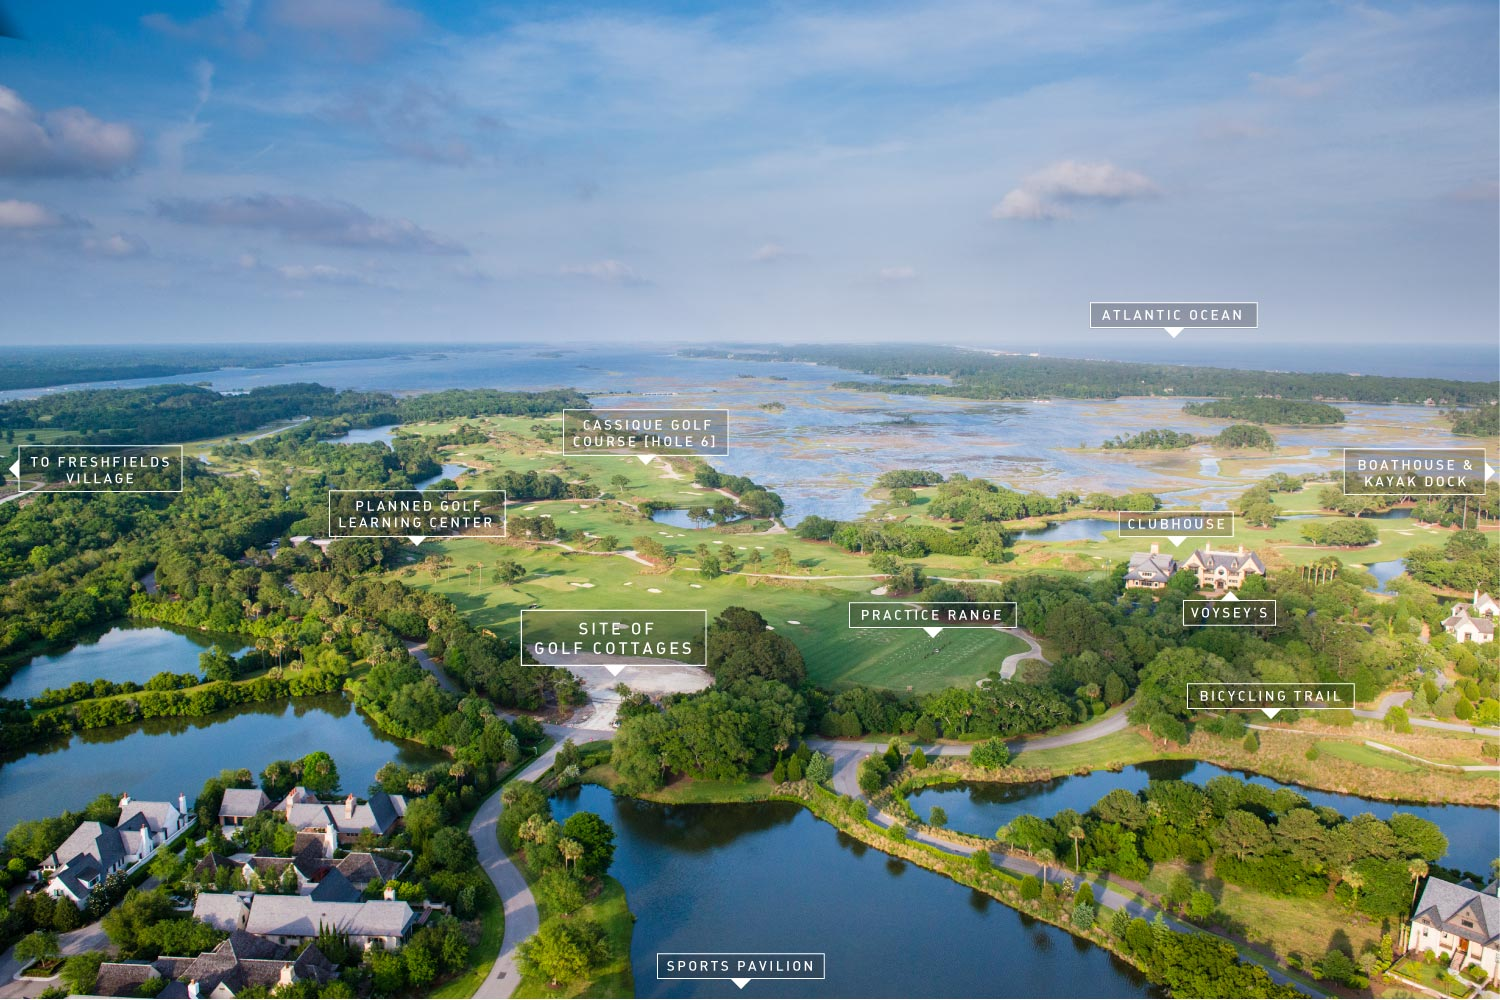 Aerial view of Cassique's amenities on Kiawah Island, SC